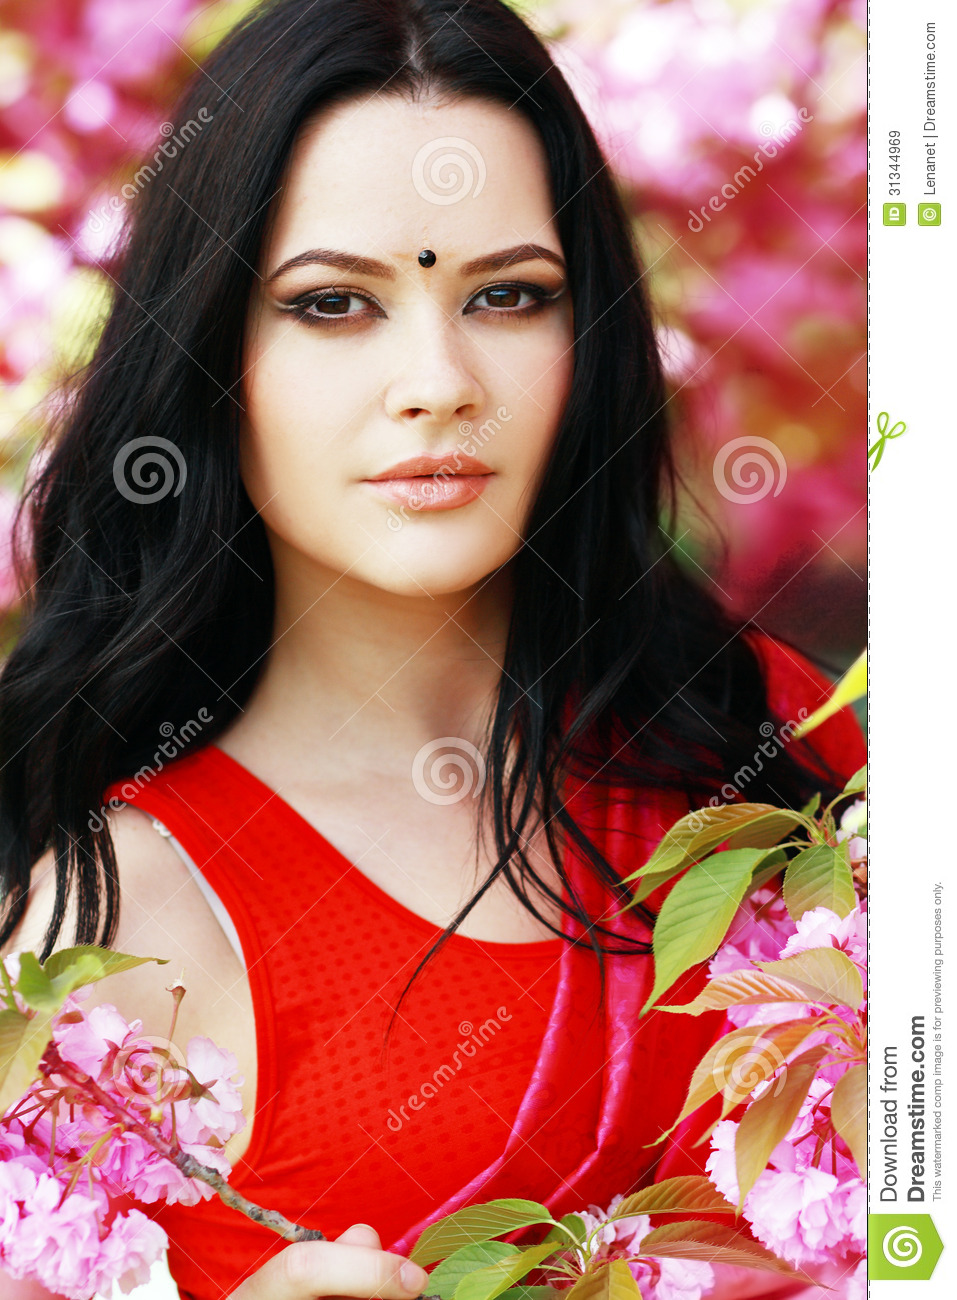 hindu single women in blossom Dating indian women and single girls online join our matchmaking site to meet beautiful and lonely ladies from india.